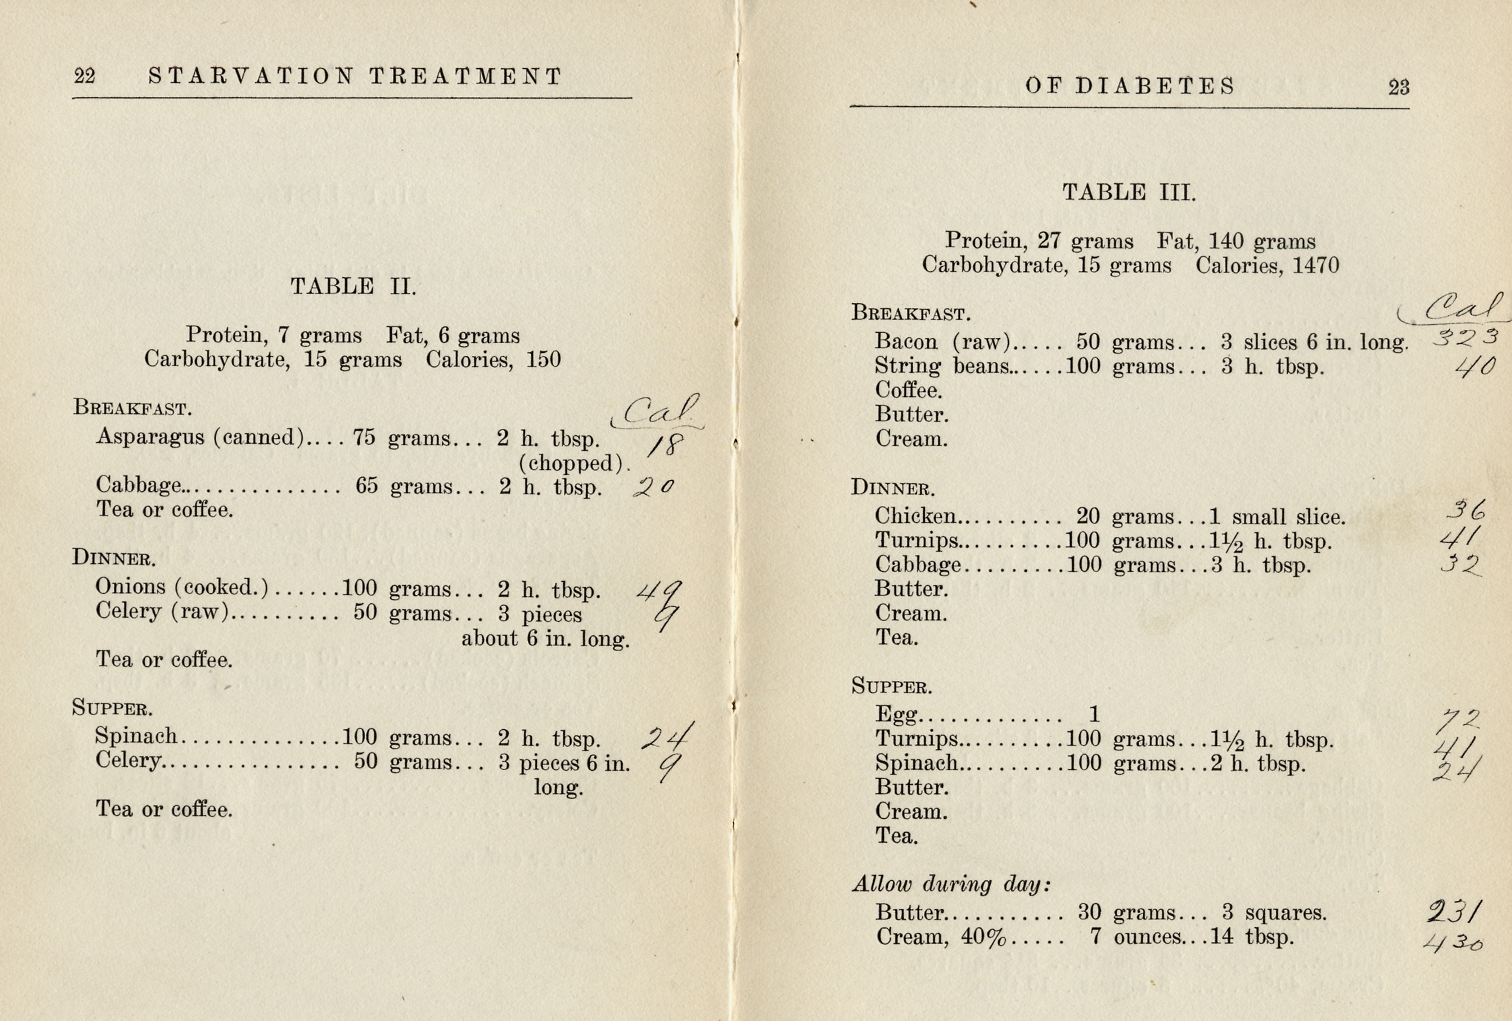 Starvation Diet Detail, from The Starvation Treatment of Diabetes by Lewis Webb Bill, M.D. and Rena S. Eckman, Dietician. 1915.